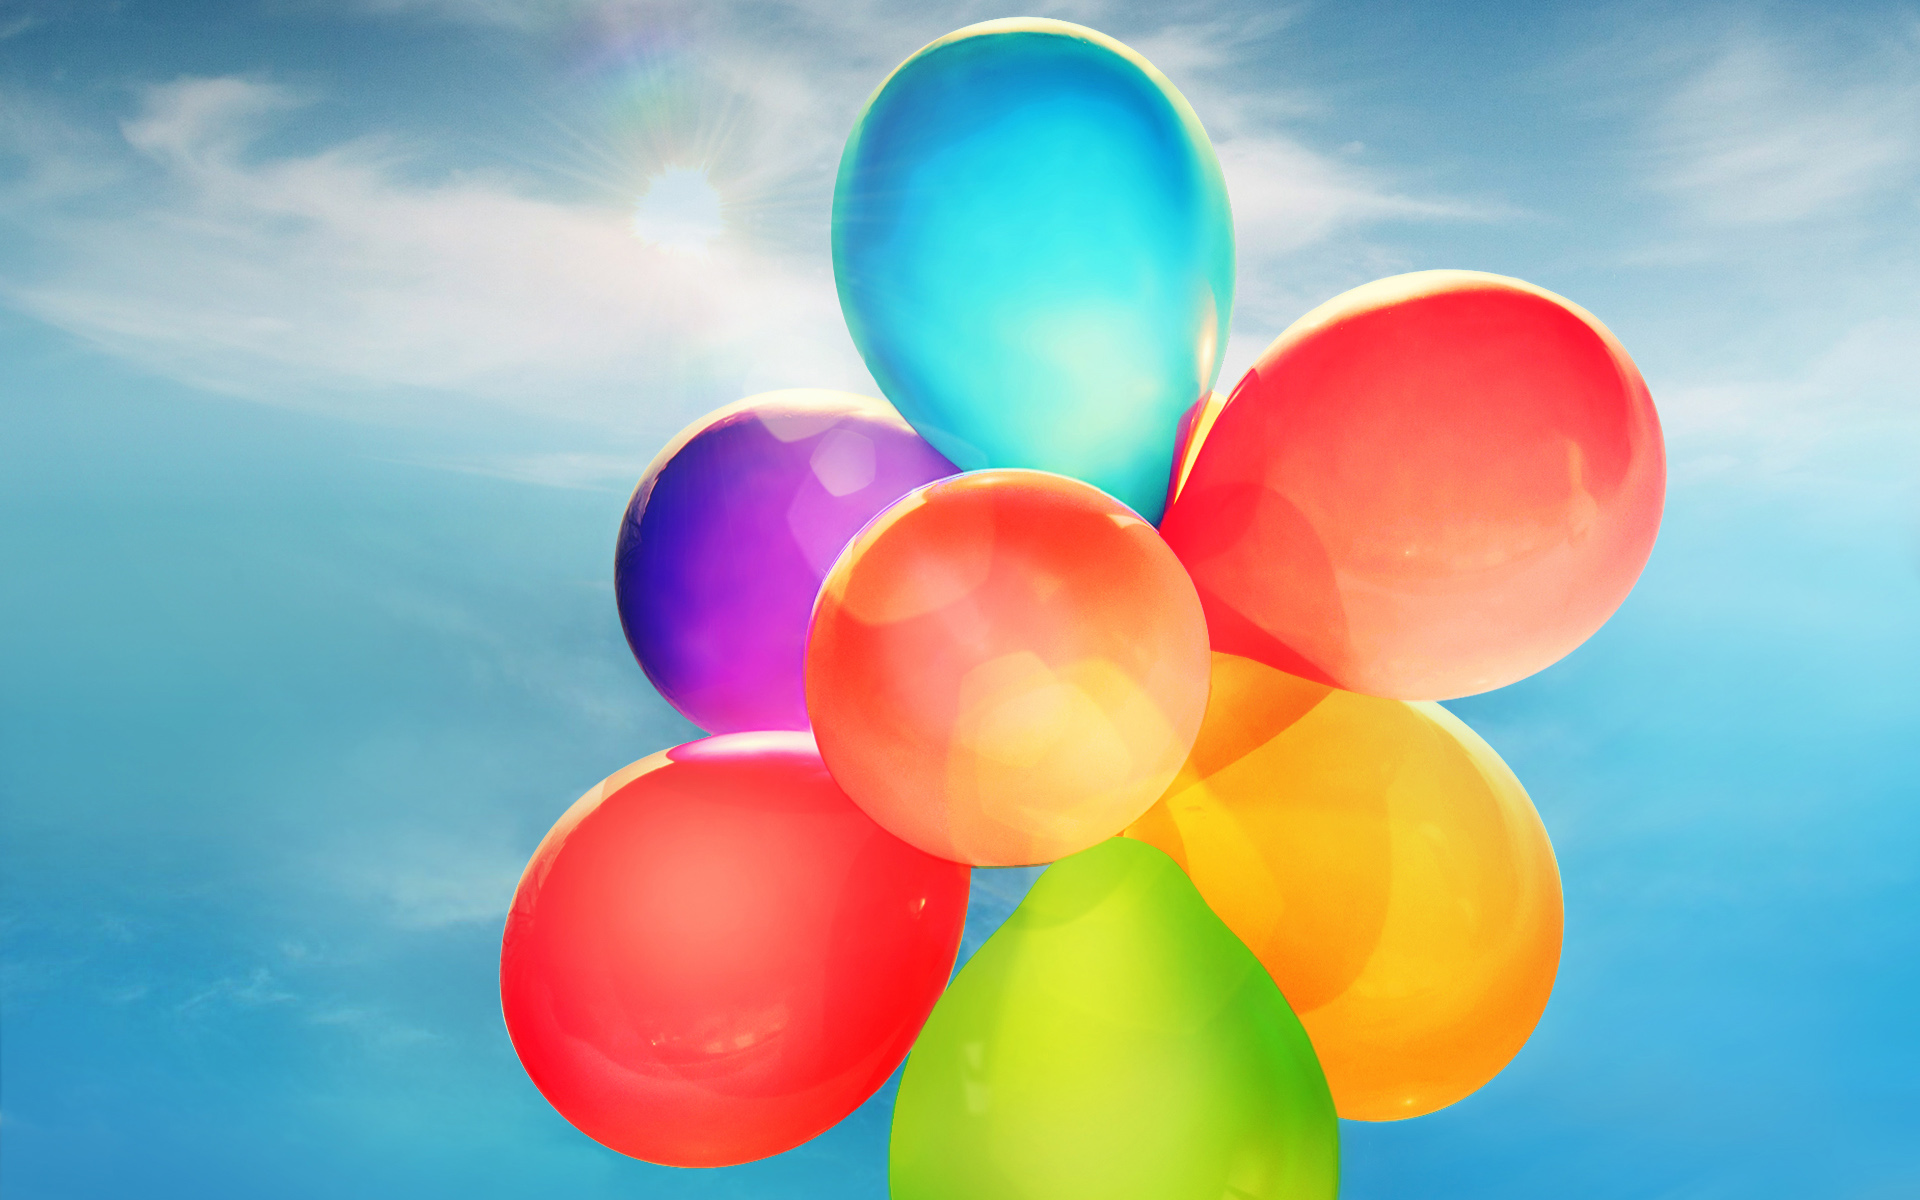 Colorful Balloons 981.03 Kb